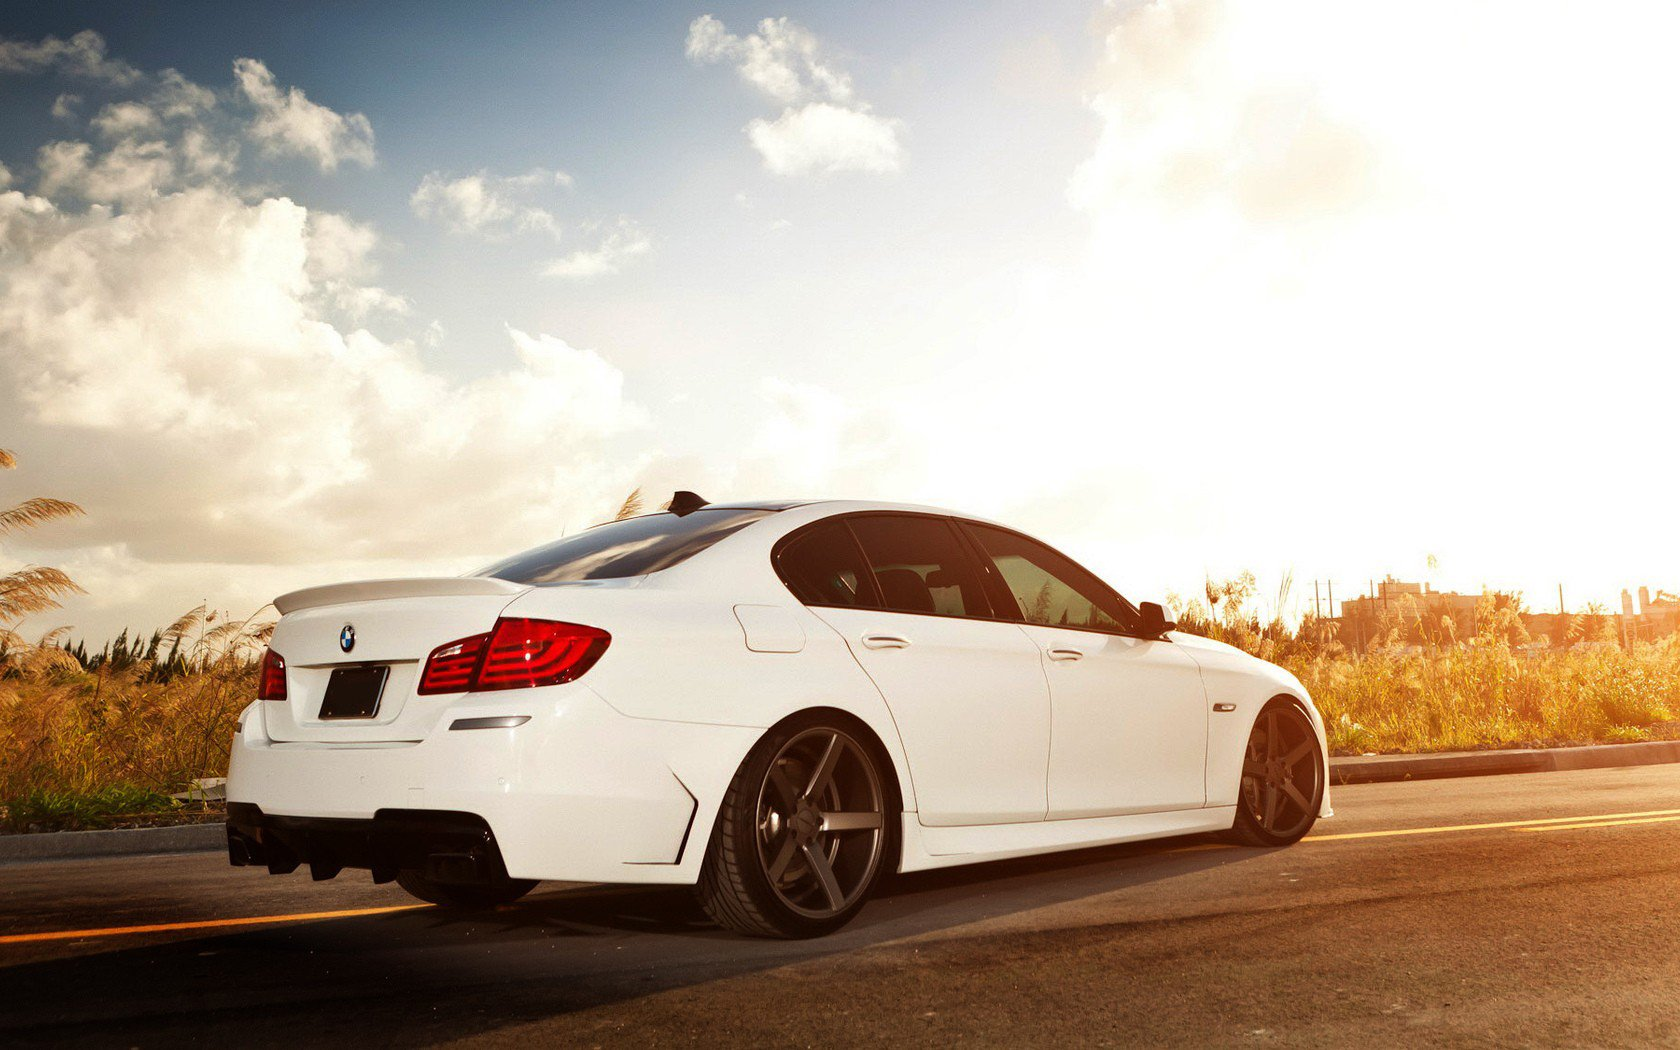 Bmw Hd Wallpapers For Desktop Cool Cars Wallpapers For